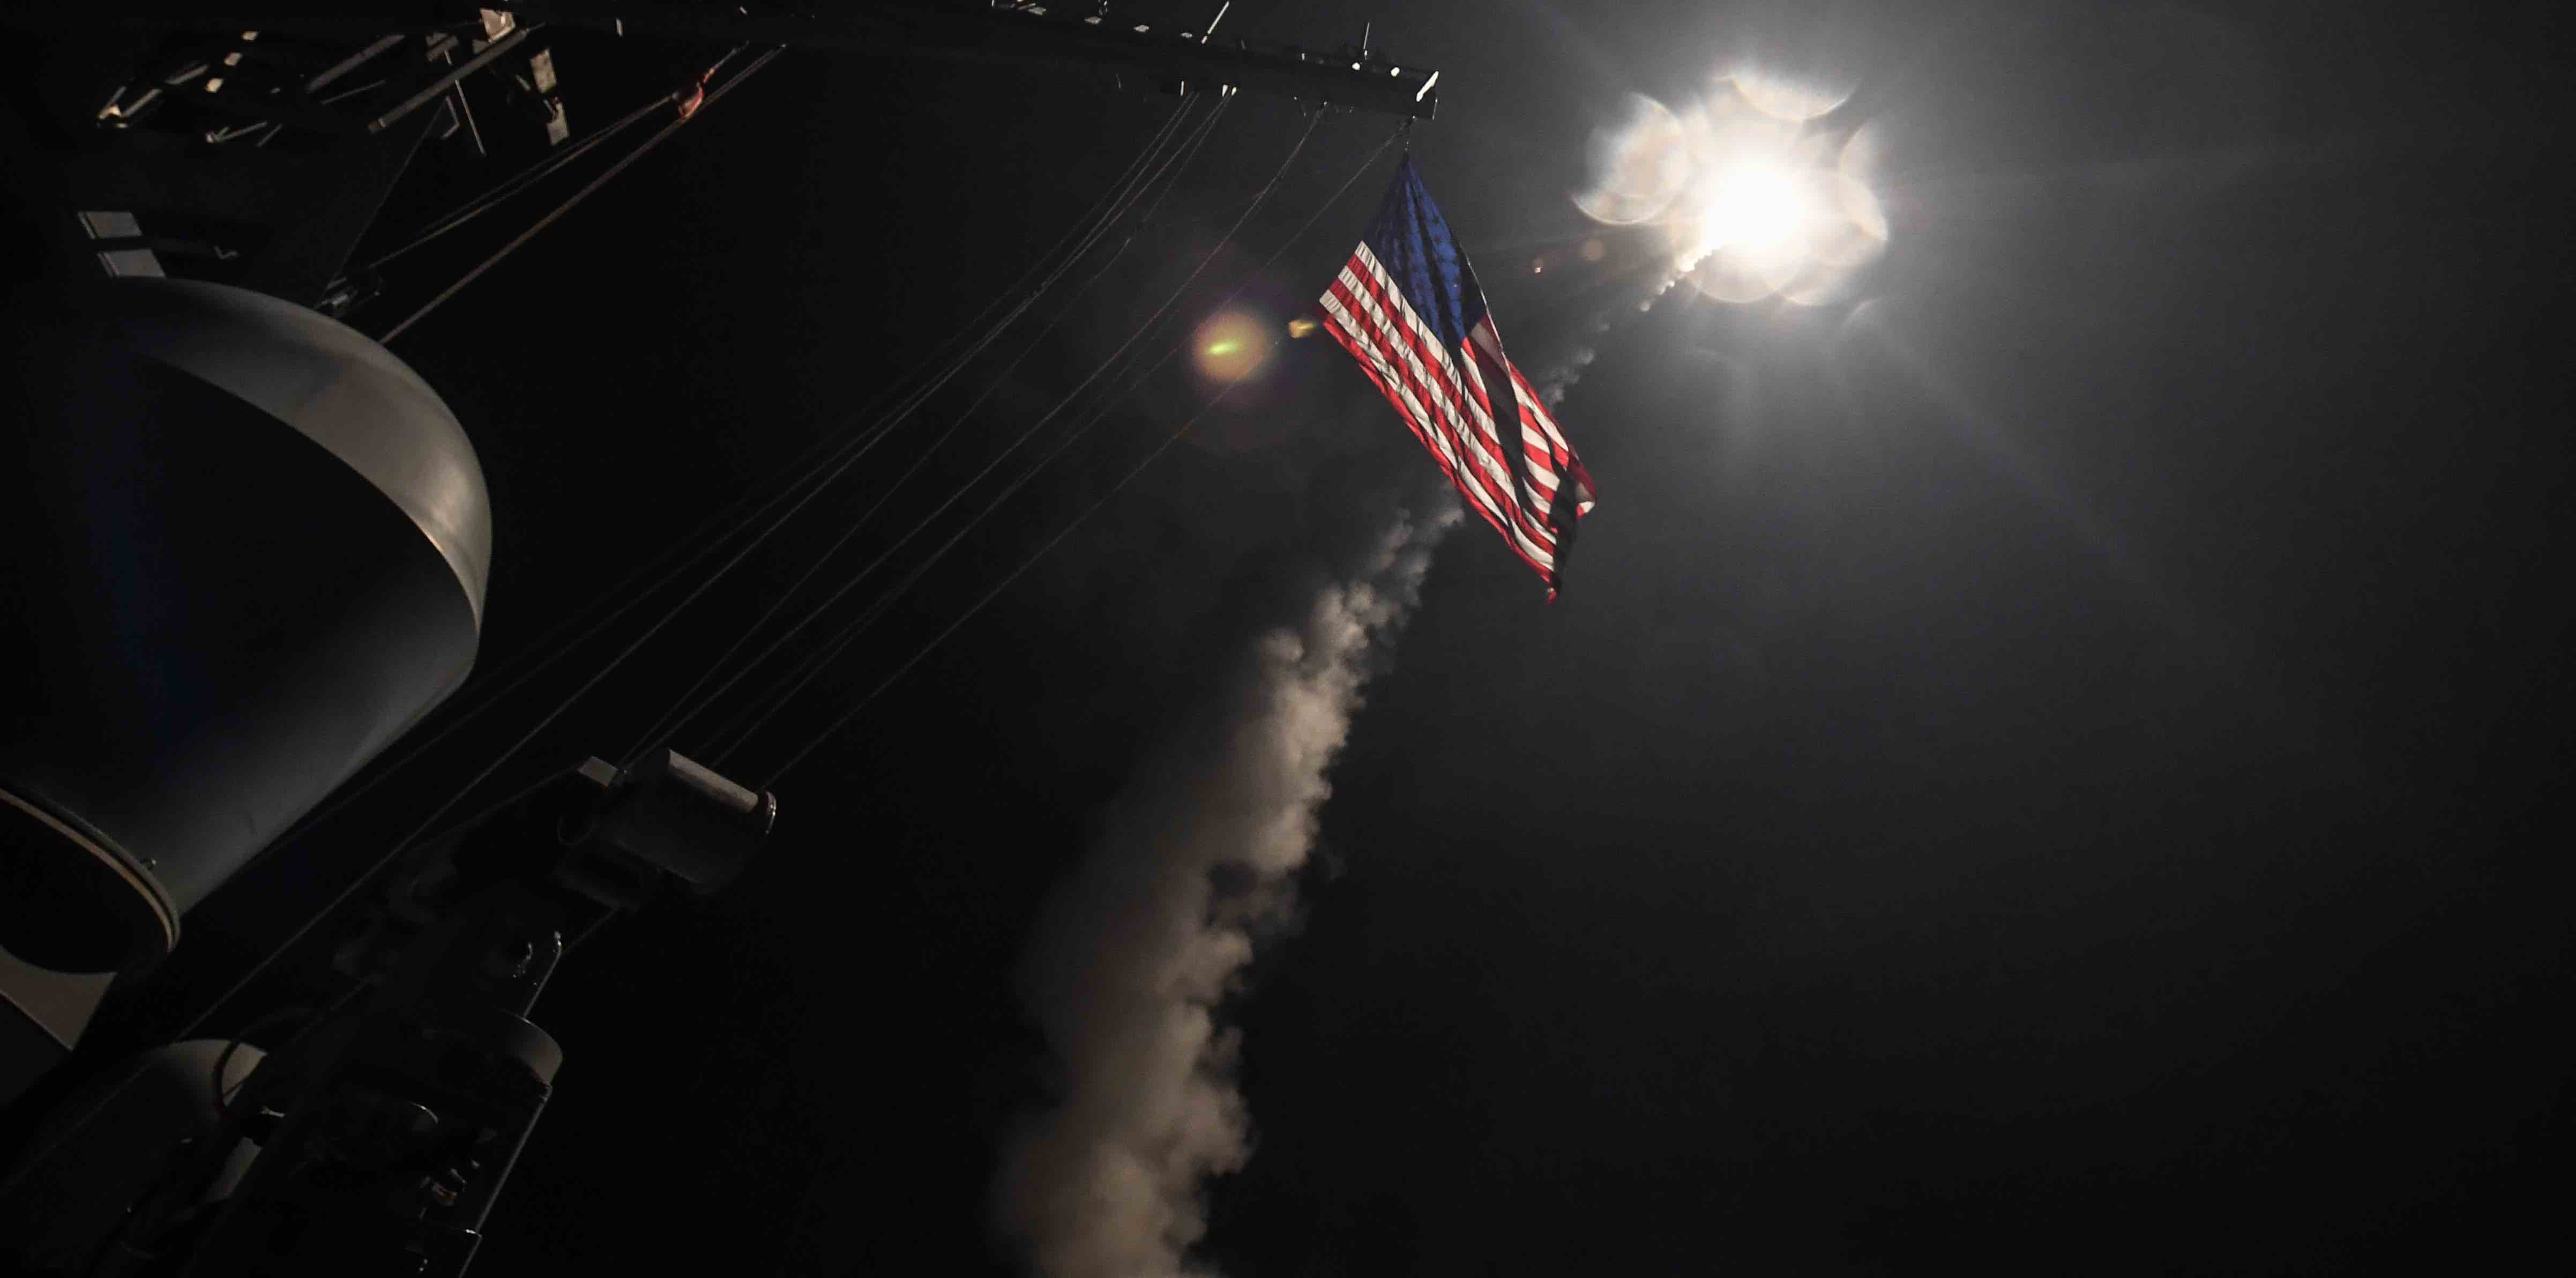 A US Tomahawk missile is fired in April 2017 at a target in Syria in retaliation for a chemical attack (Photo: Ford Williams/US Navy via Getty)